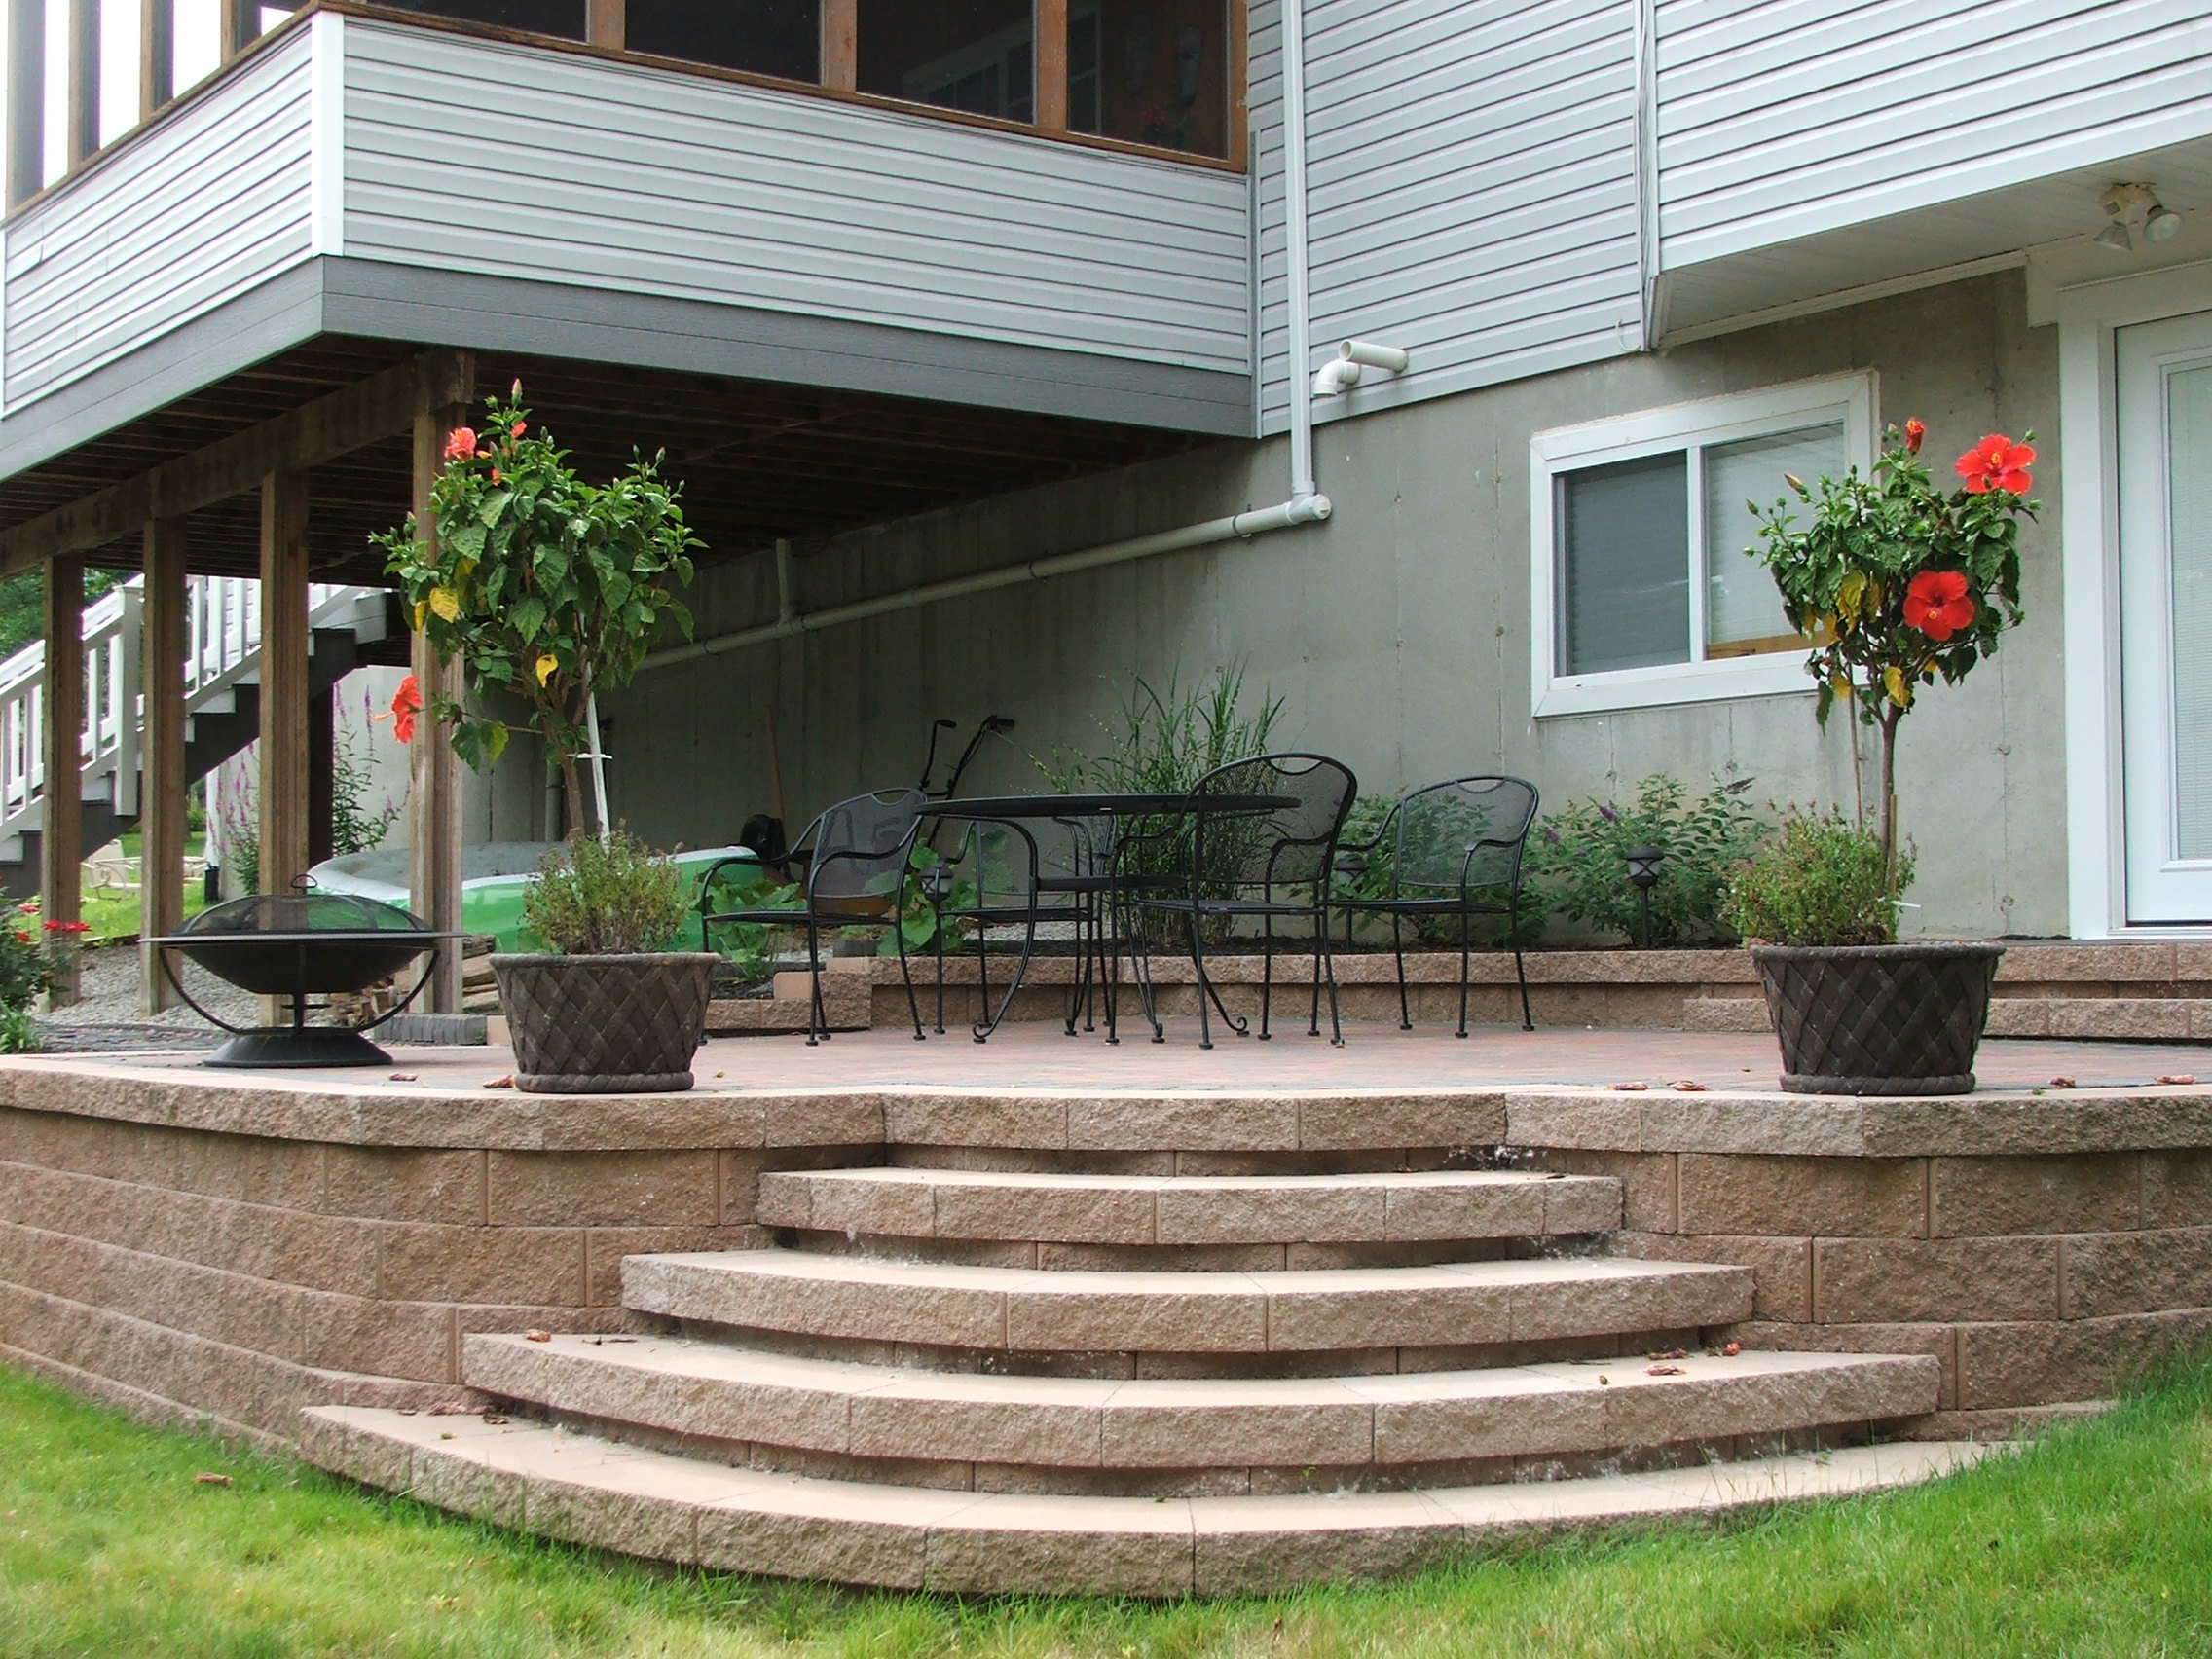 stones patio walmart lowes also ste walkway peachy rubber bric block sale impeccable base pavers cassay inch granite stone bricks edging shop paver x size roth retaining large charcoal examplary at landscaping wall blocks tan portage allen of stepping